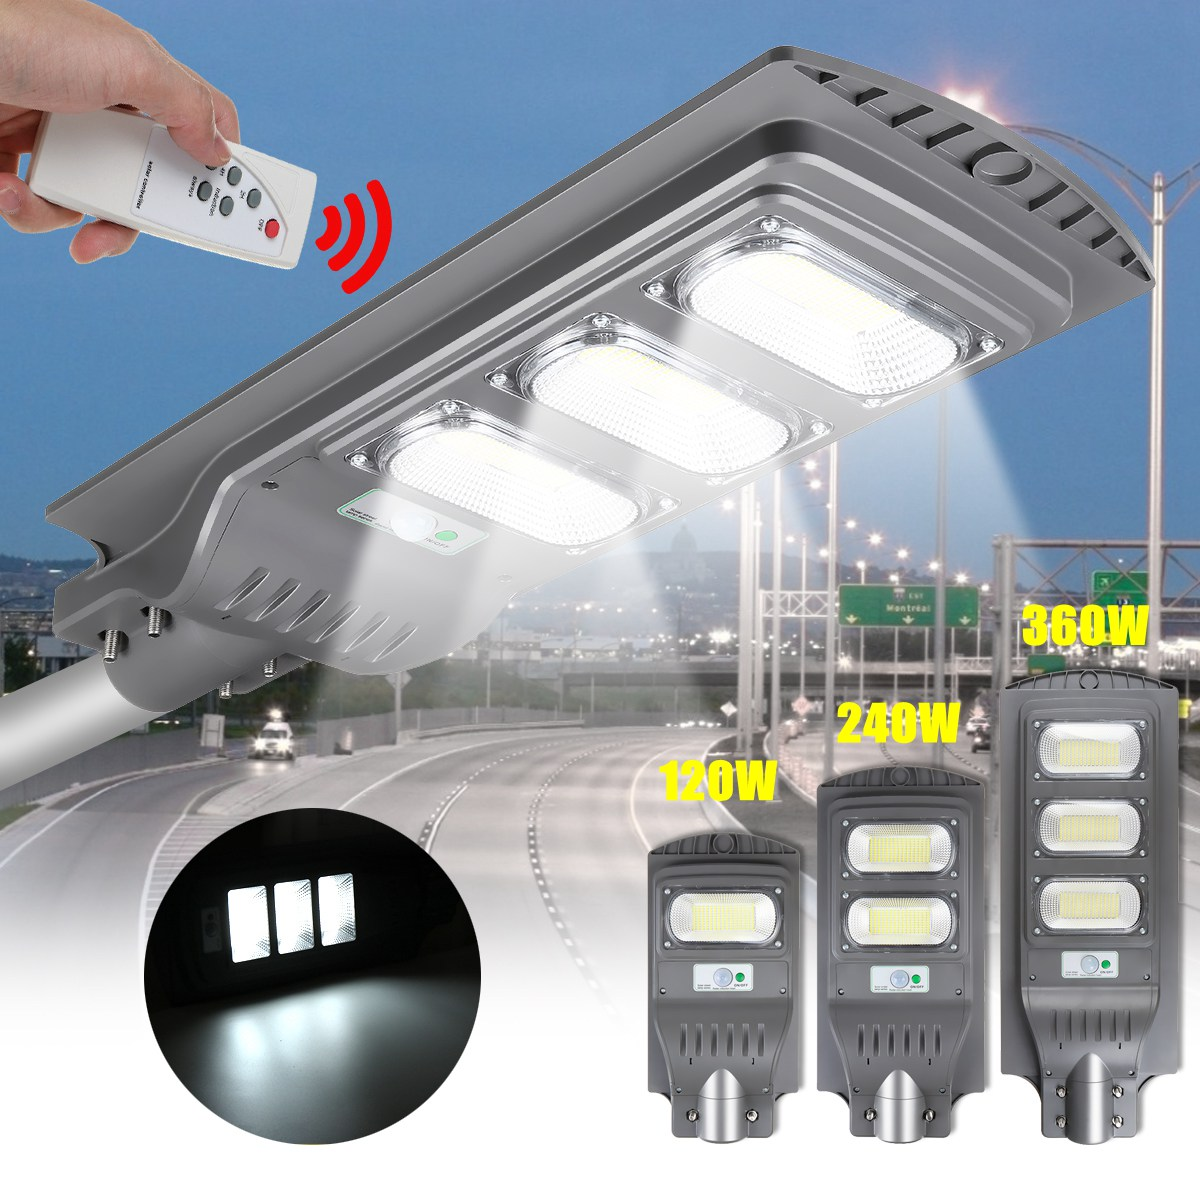 120W 240W 360W LED Outdoor Lighting Solar Wall Light Radars Induction Garden Timing Lamp LED Street Light With Remote Control